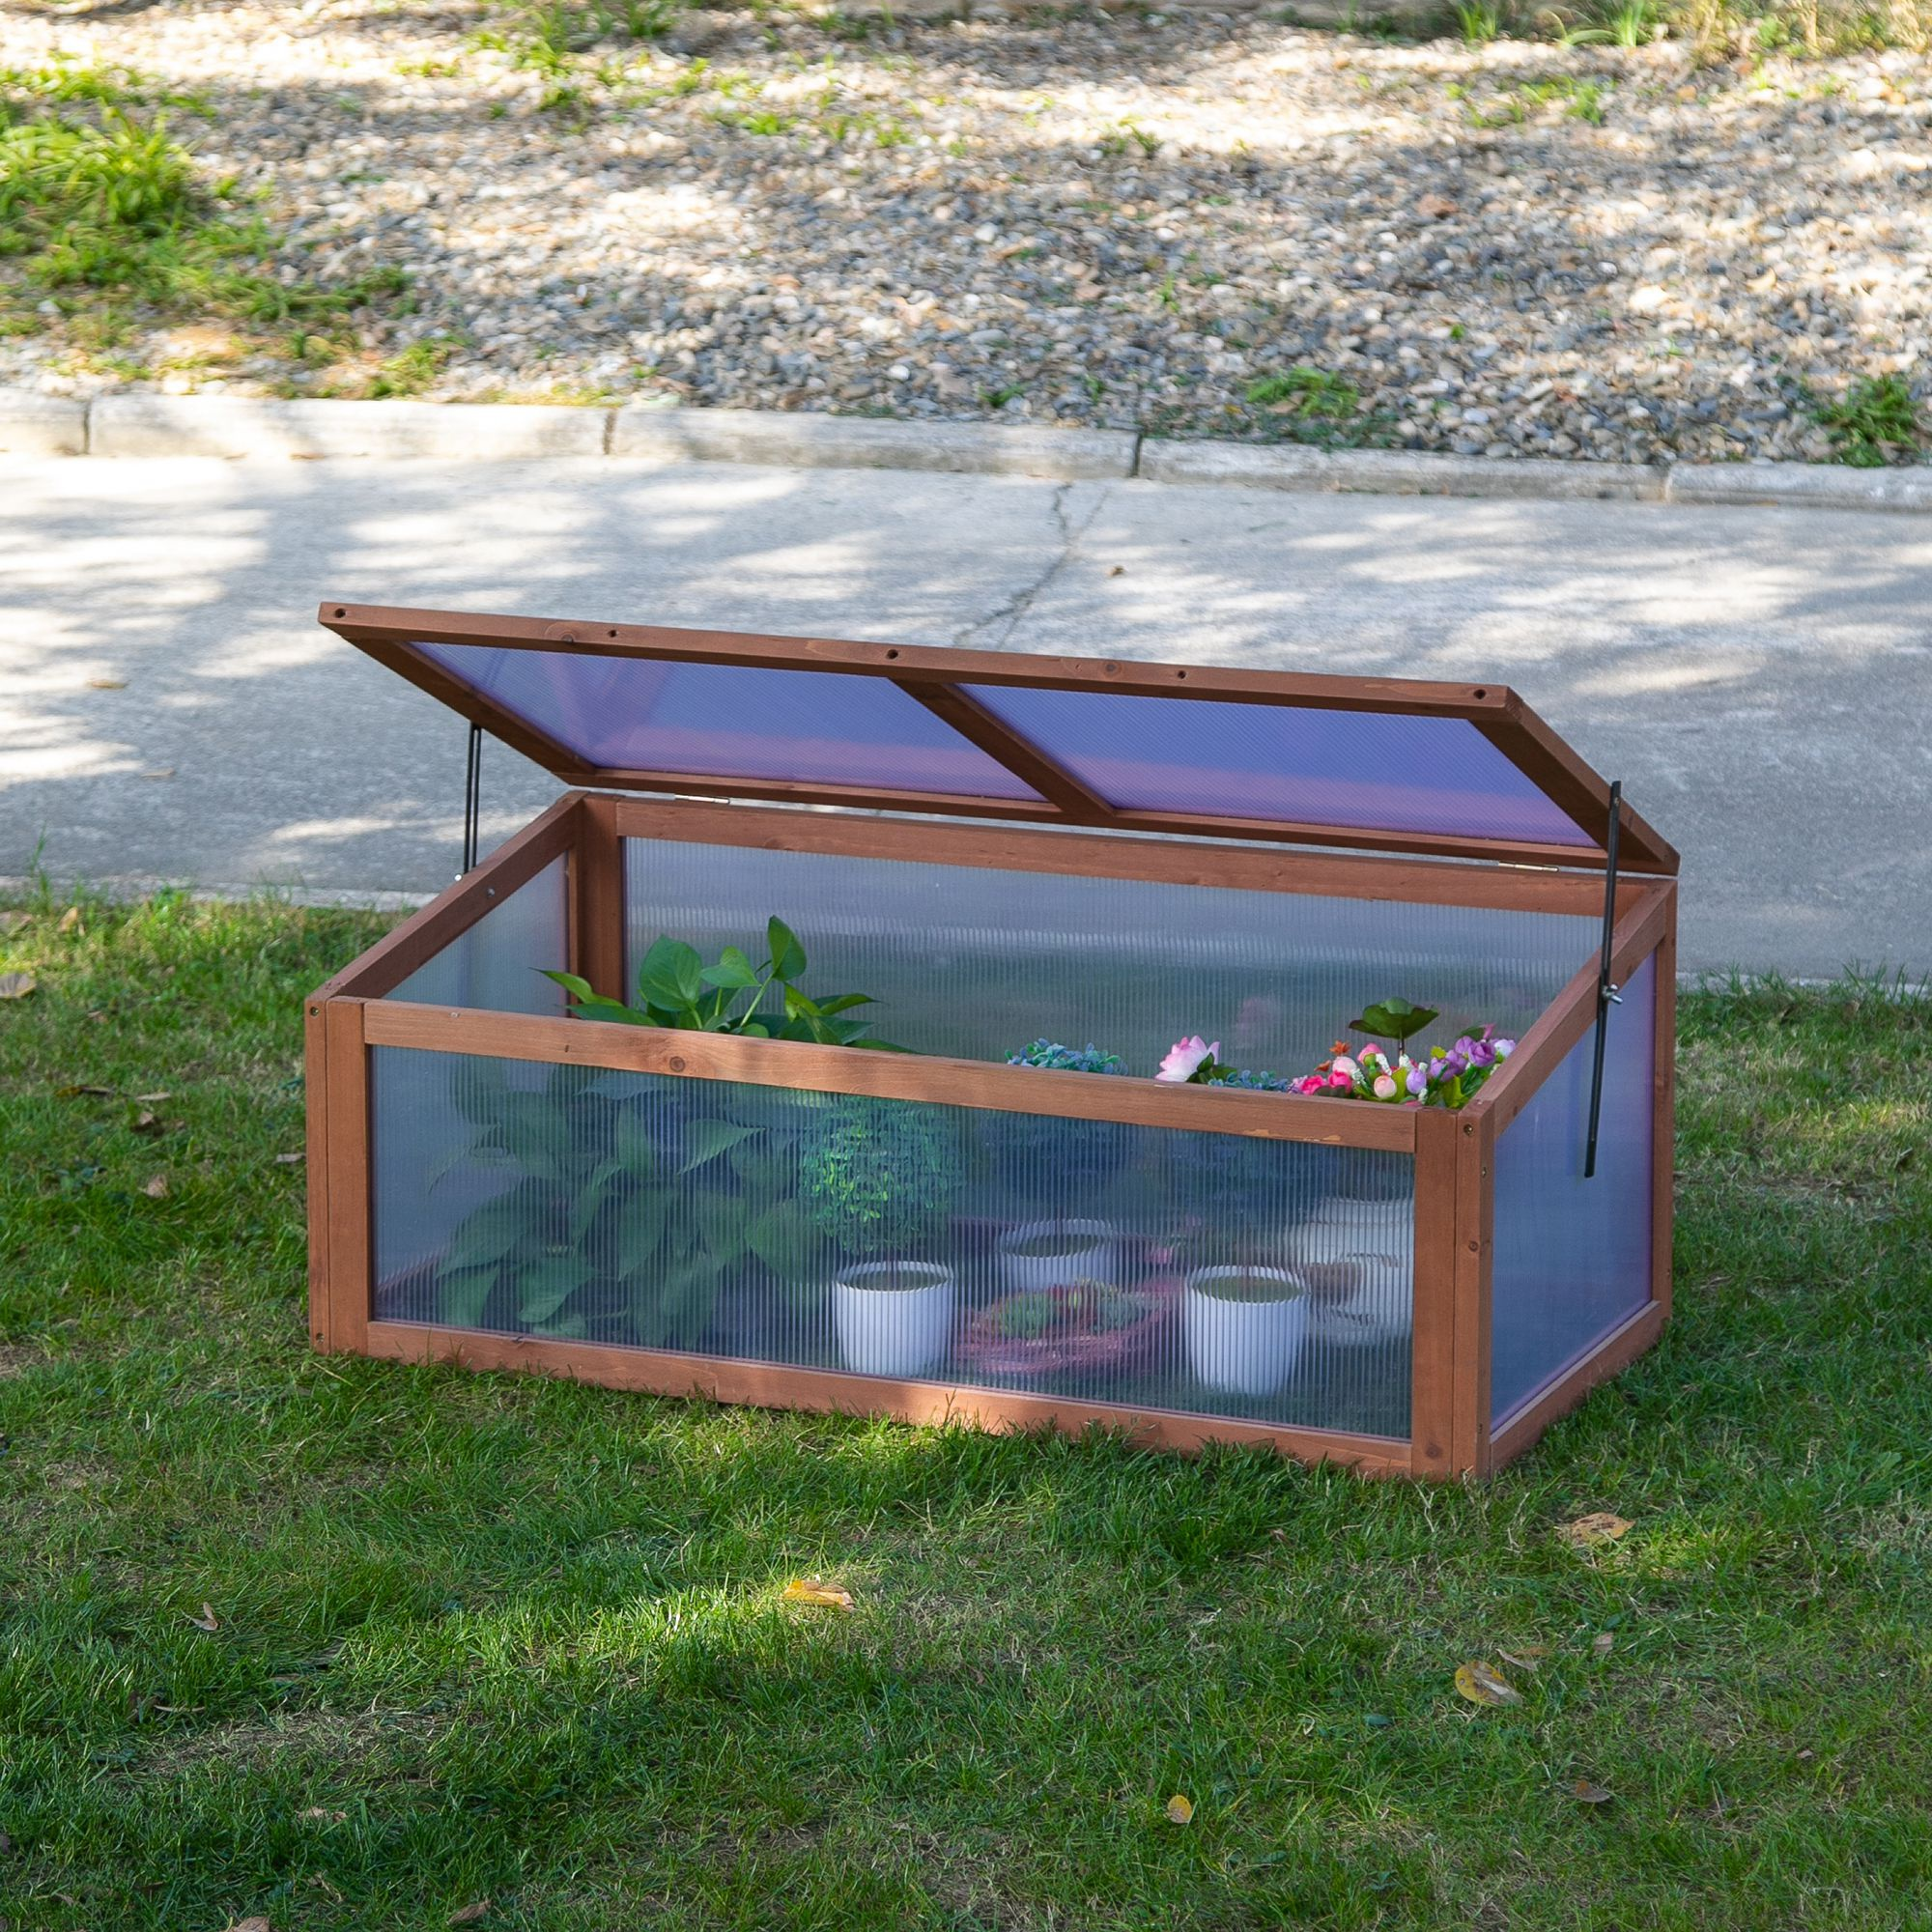 Outsunny Square Wooden Outdoor Greenhouse for Plants with Openable Cover PC Board